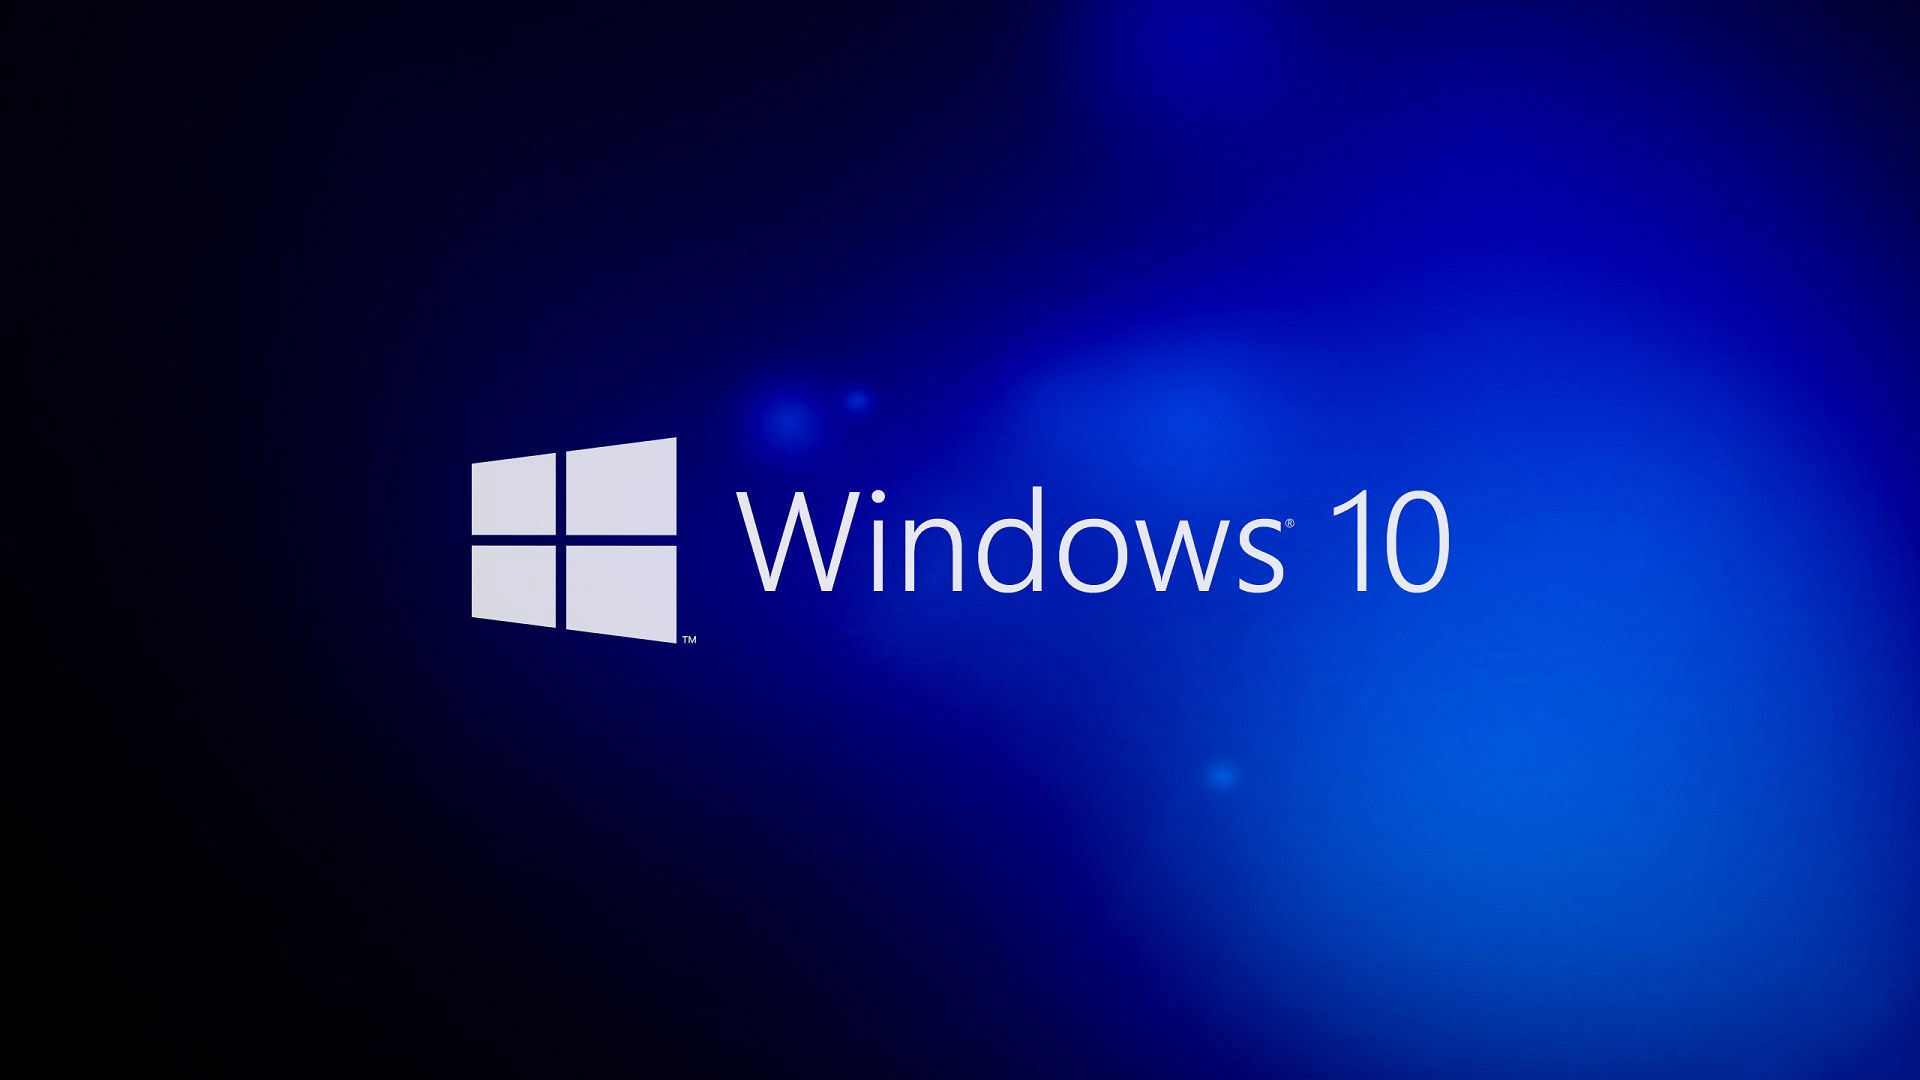 Wallpapers Windows 10 Maximumwallhd